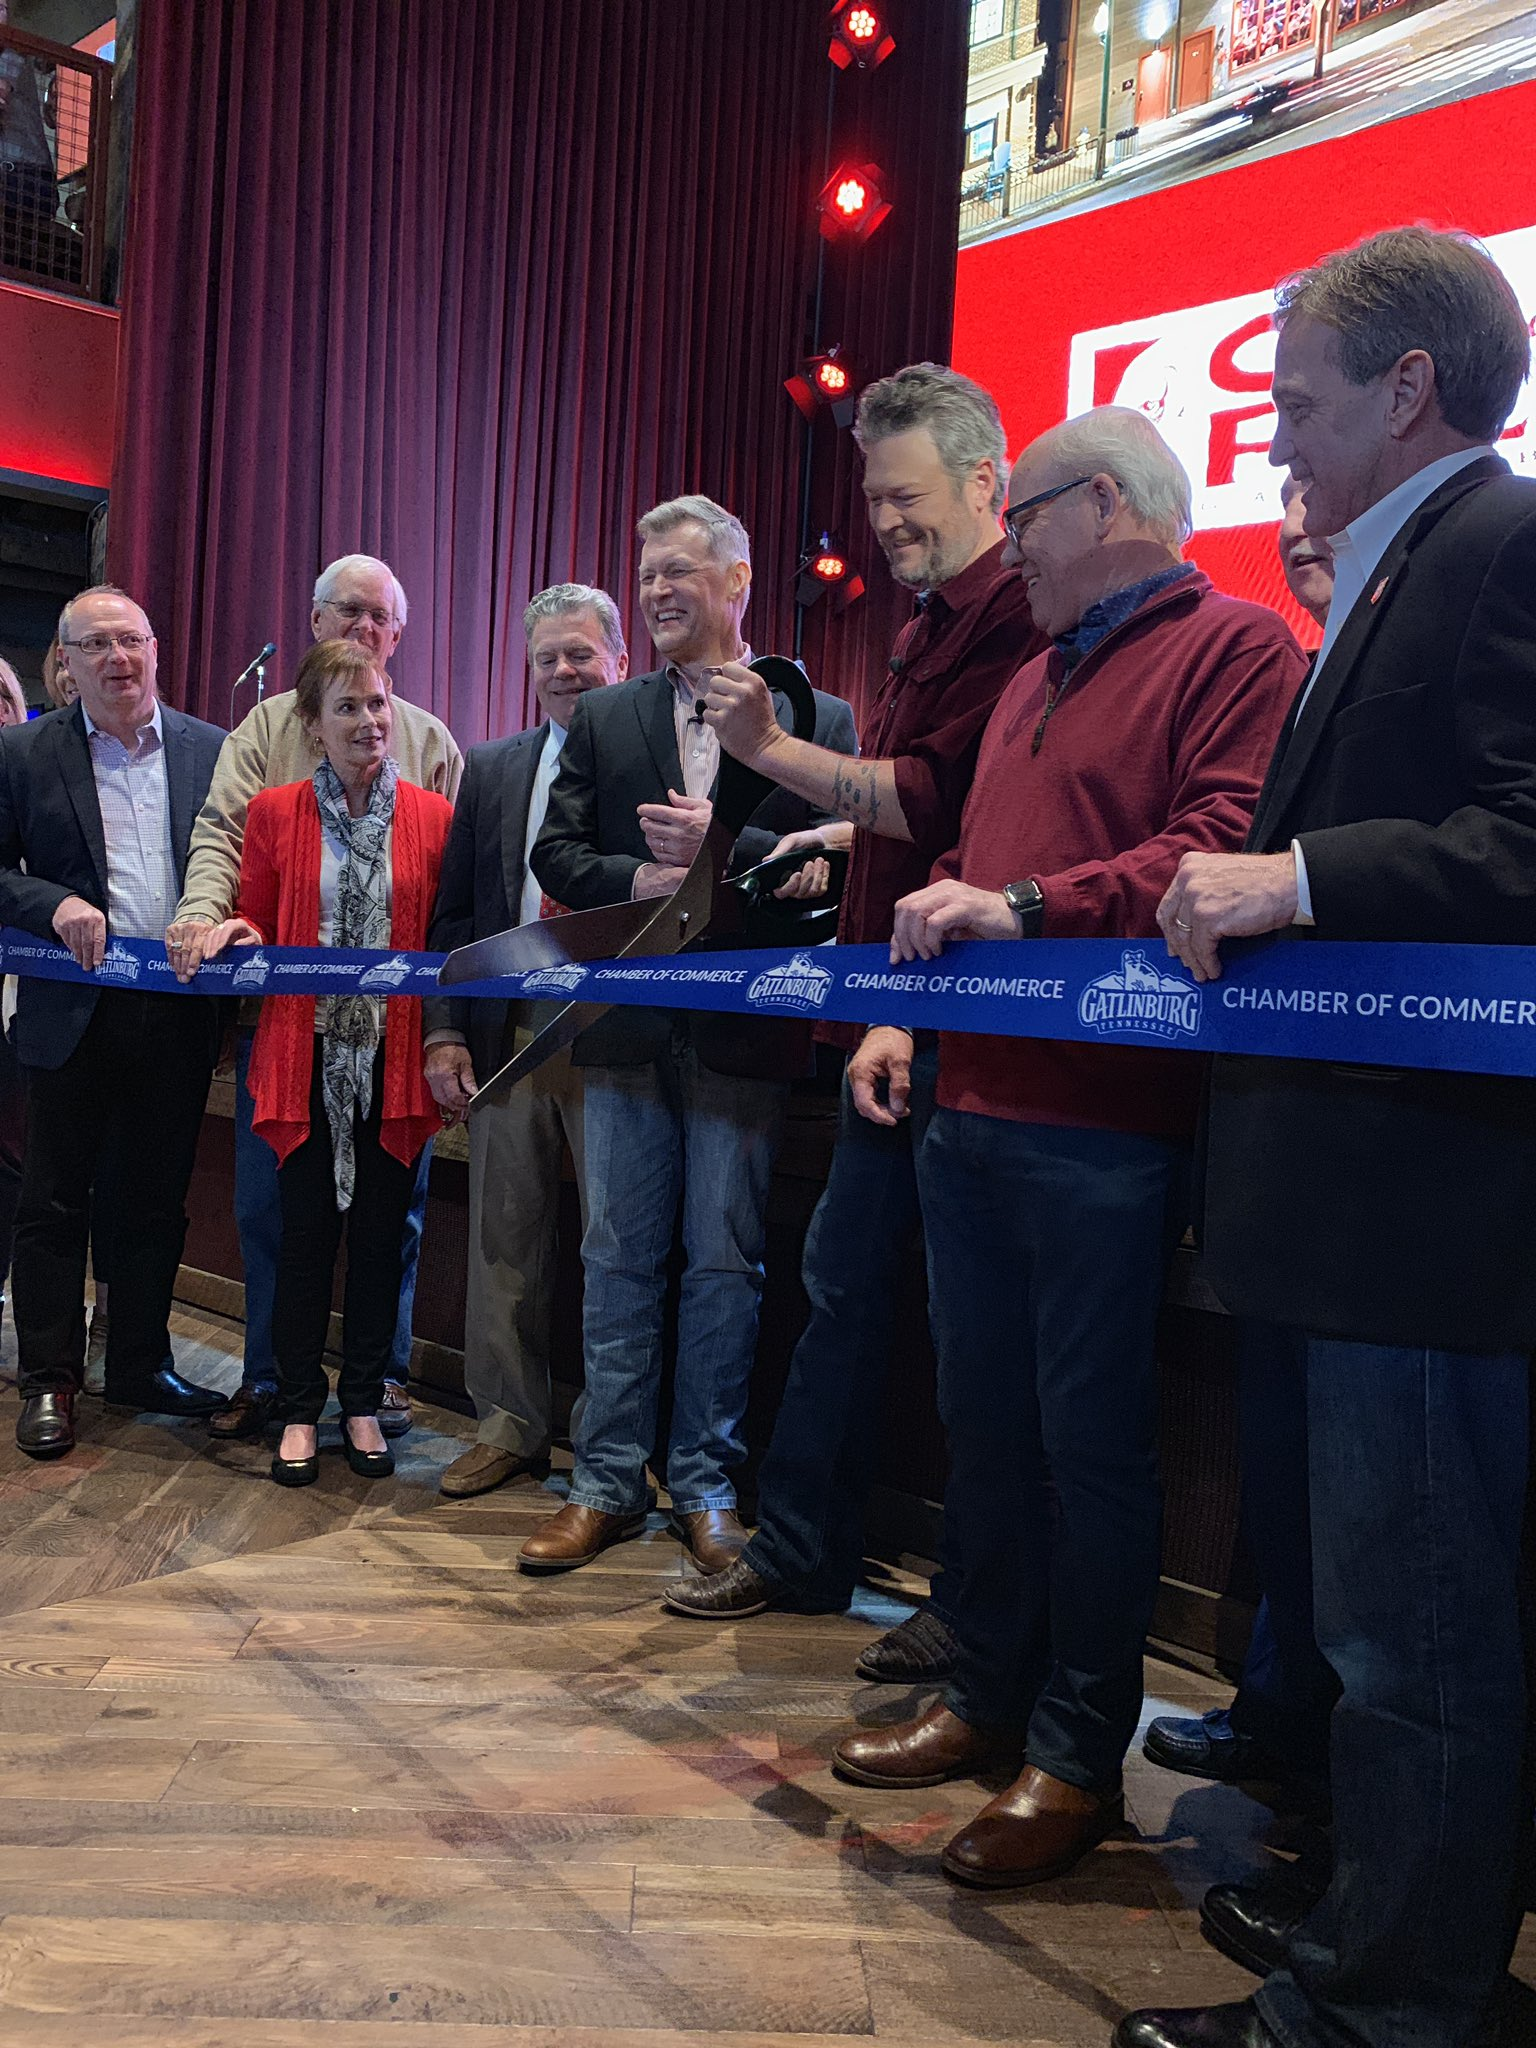 It's official! @OleRedGburg is open for business! See y'all tonight! - Team BS https://t.co/CyBsaqMgOY